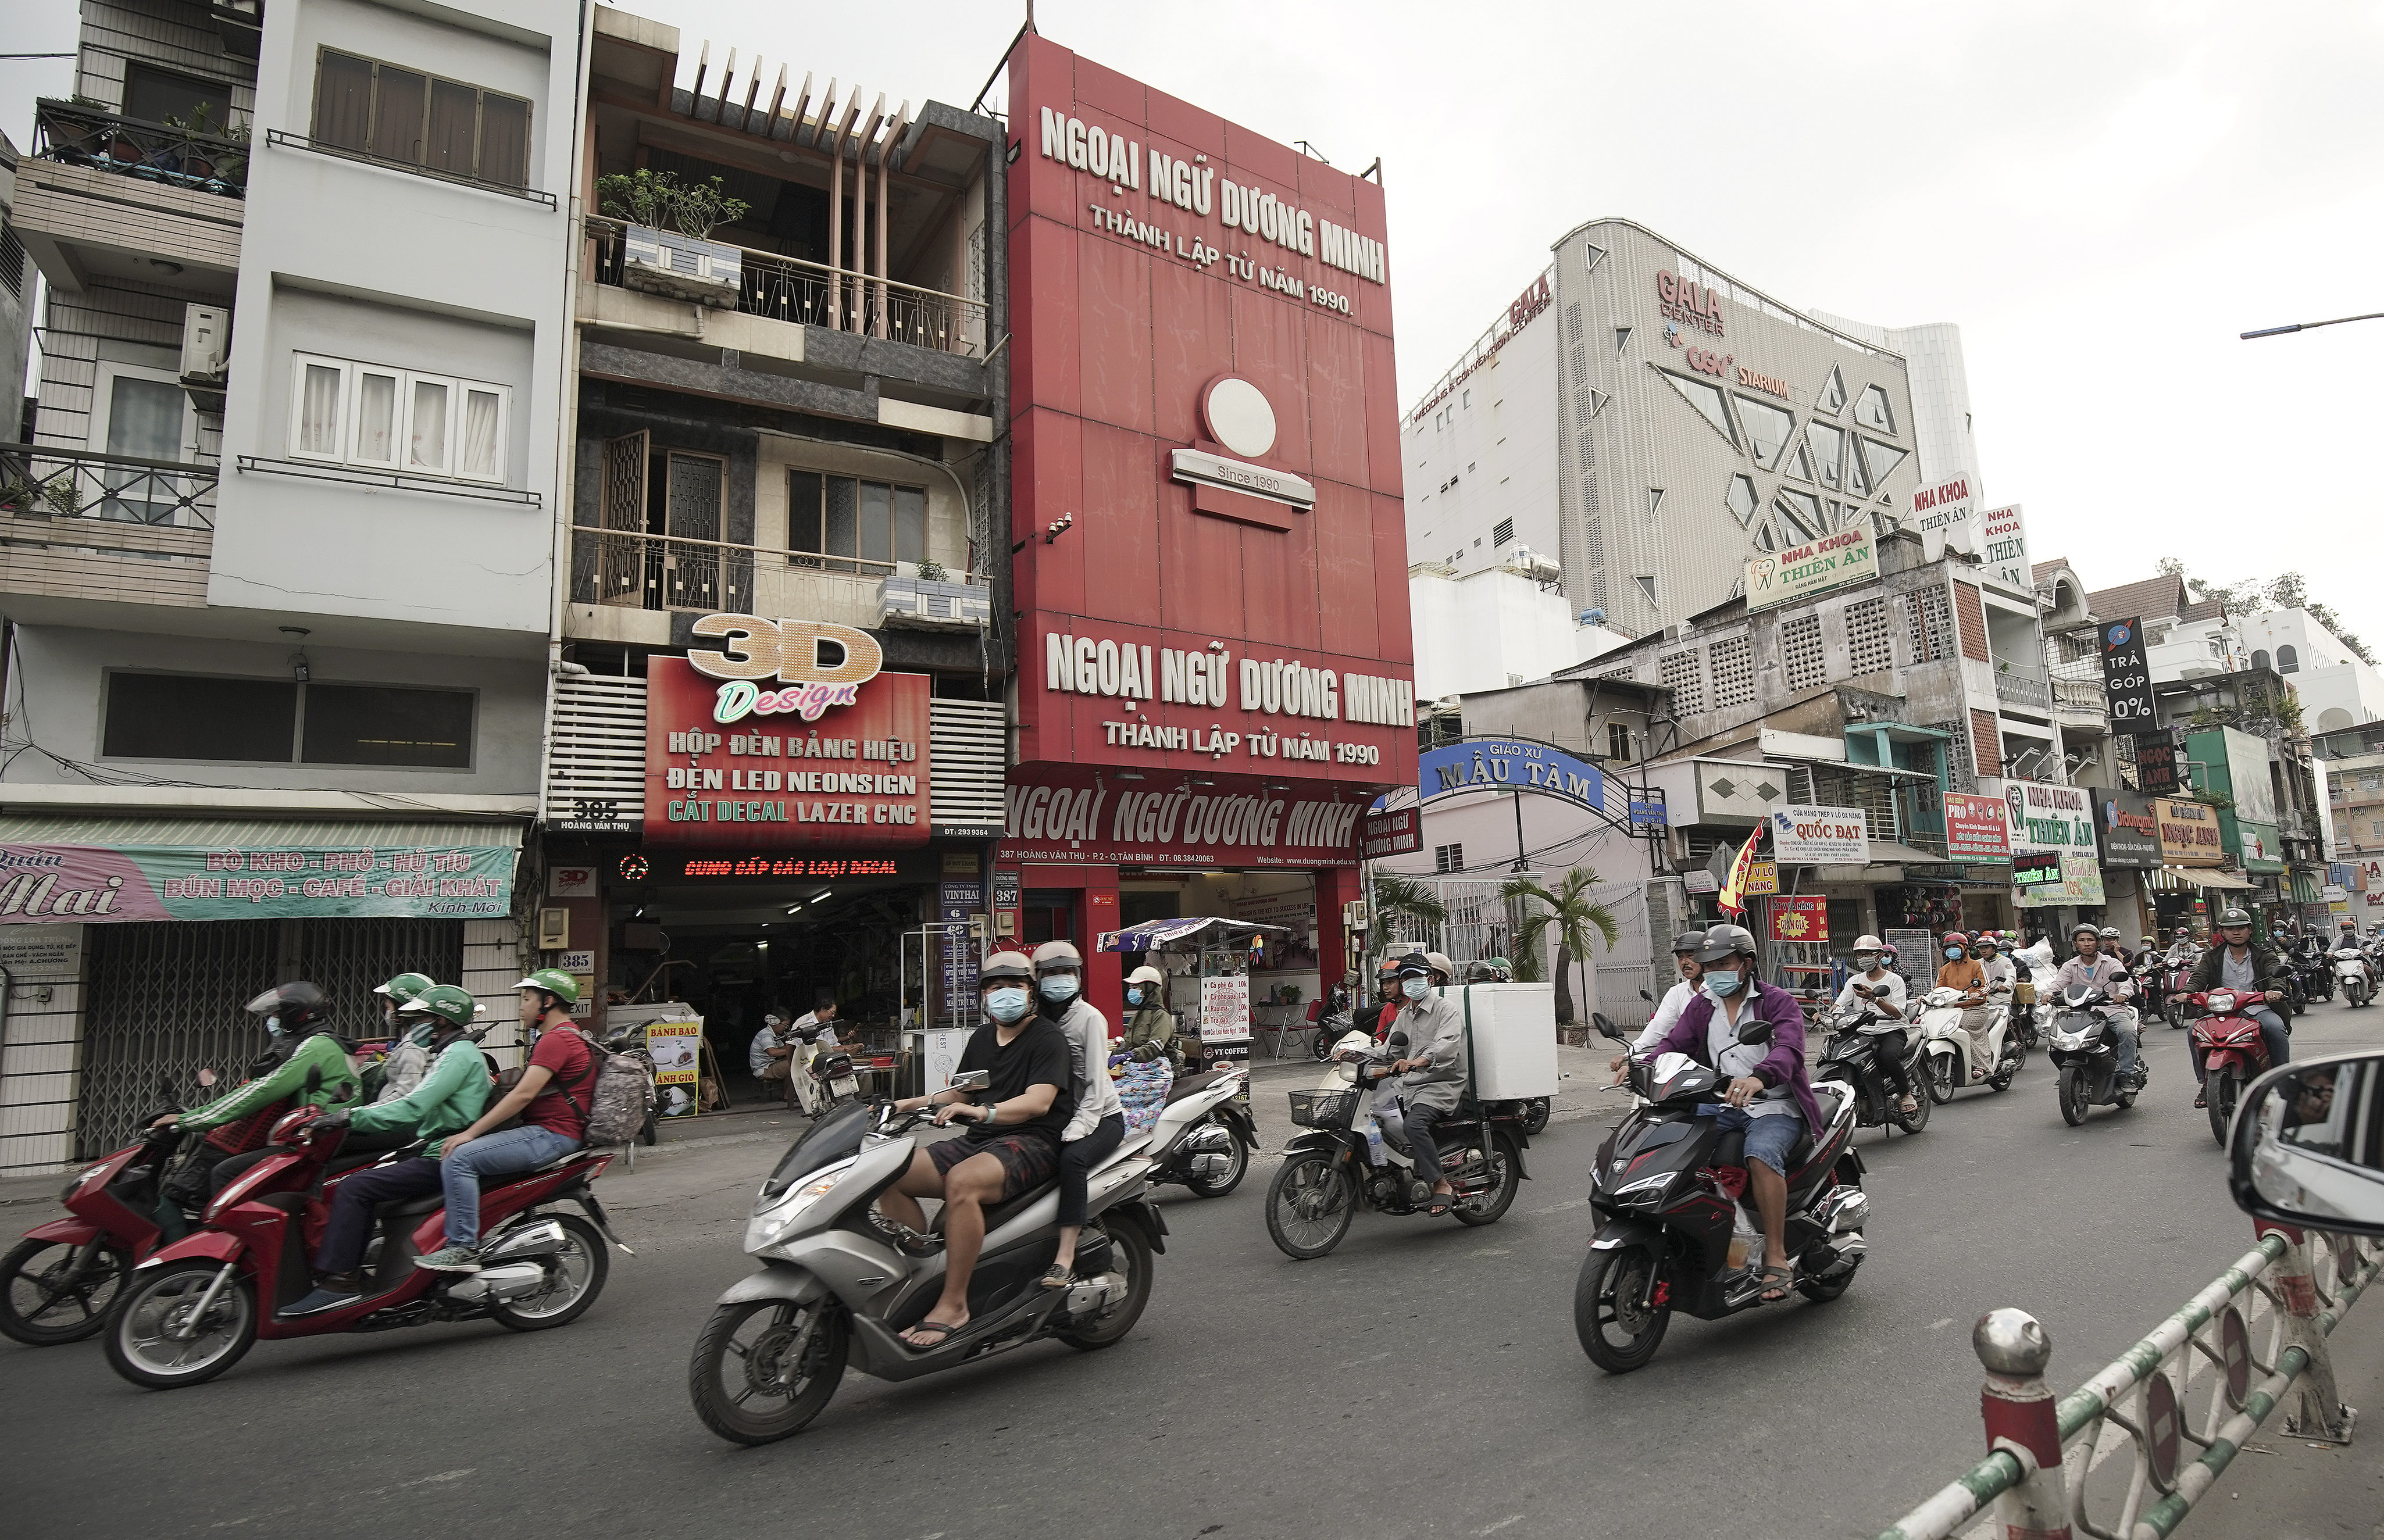 Motorists travel in Ho Chi Minh City, Vietnam, on Nov. 18, 2019. President Russell M. Nelson of The Church of Jesus Christ of Latter-day Saints spoke at a devotional in Ho Chi Minh City on Monday, Nov. 18, 2019.